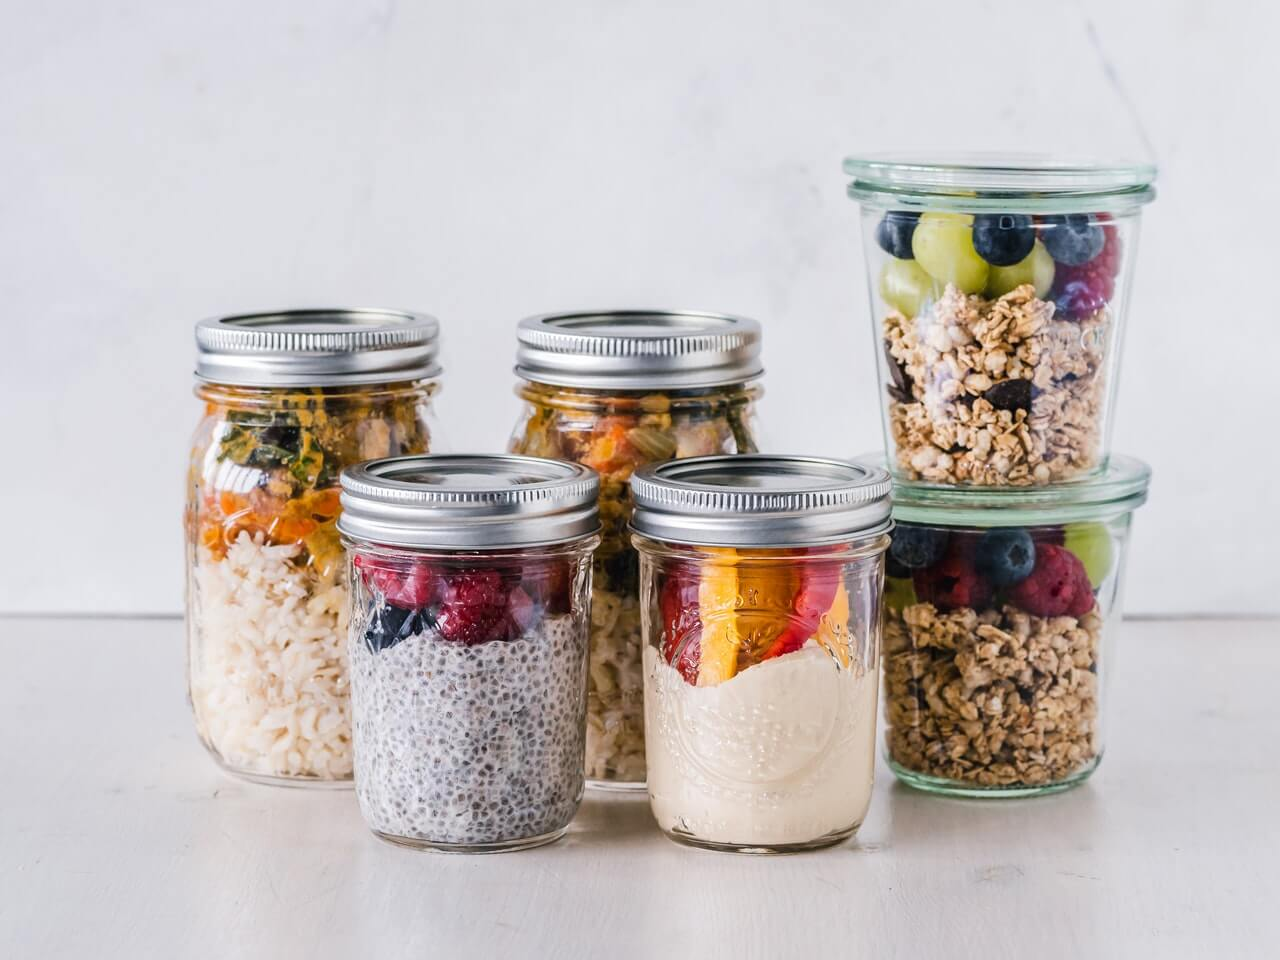 six-fruit-cereals-in-clear-glass-mason-jars-on-white-surface